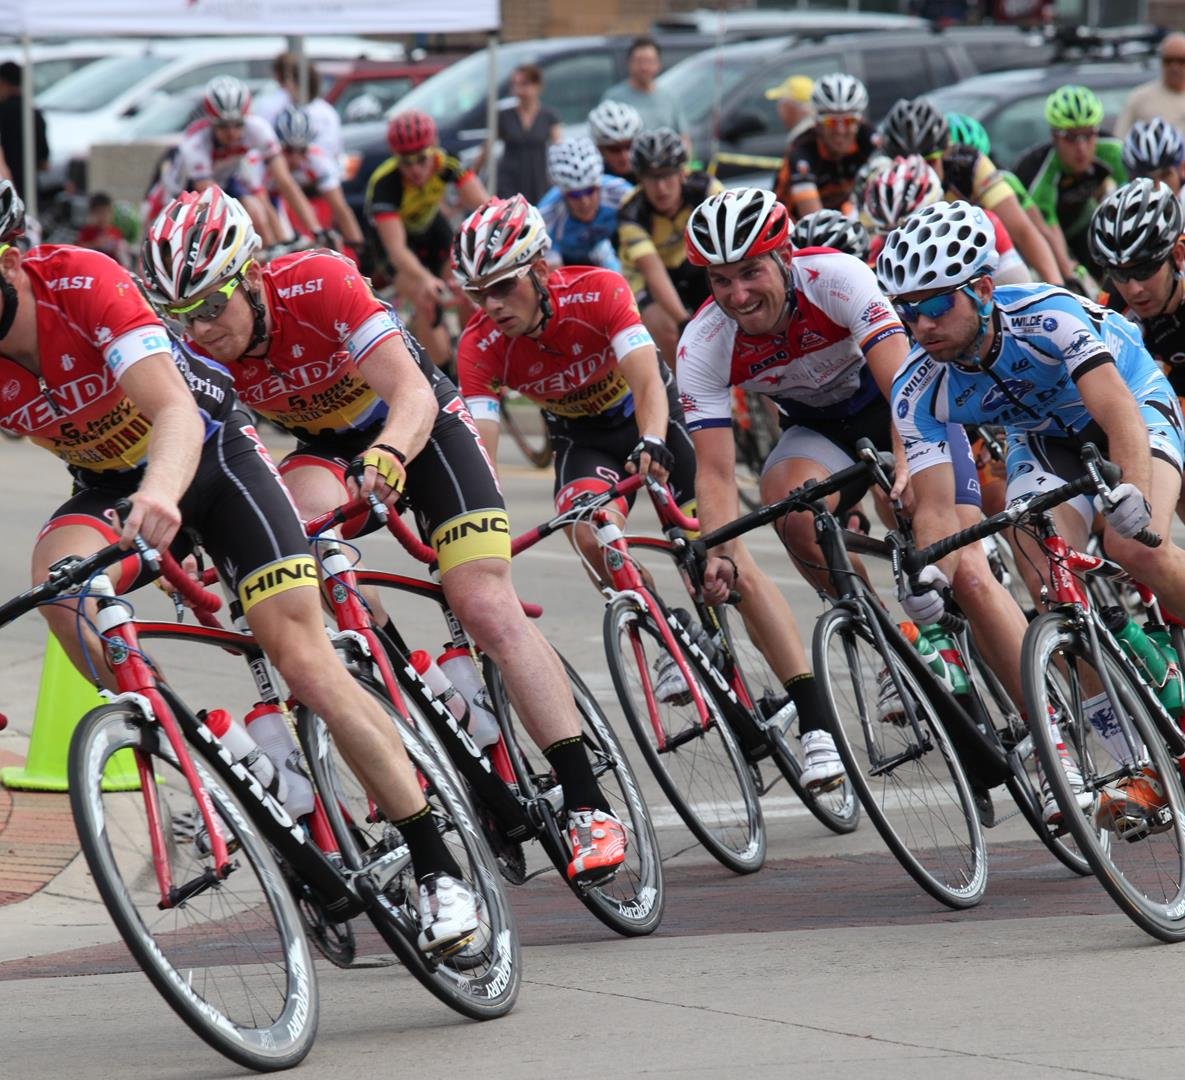 Tour de Crystal Lake: A Big Event in a Small Community